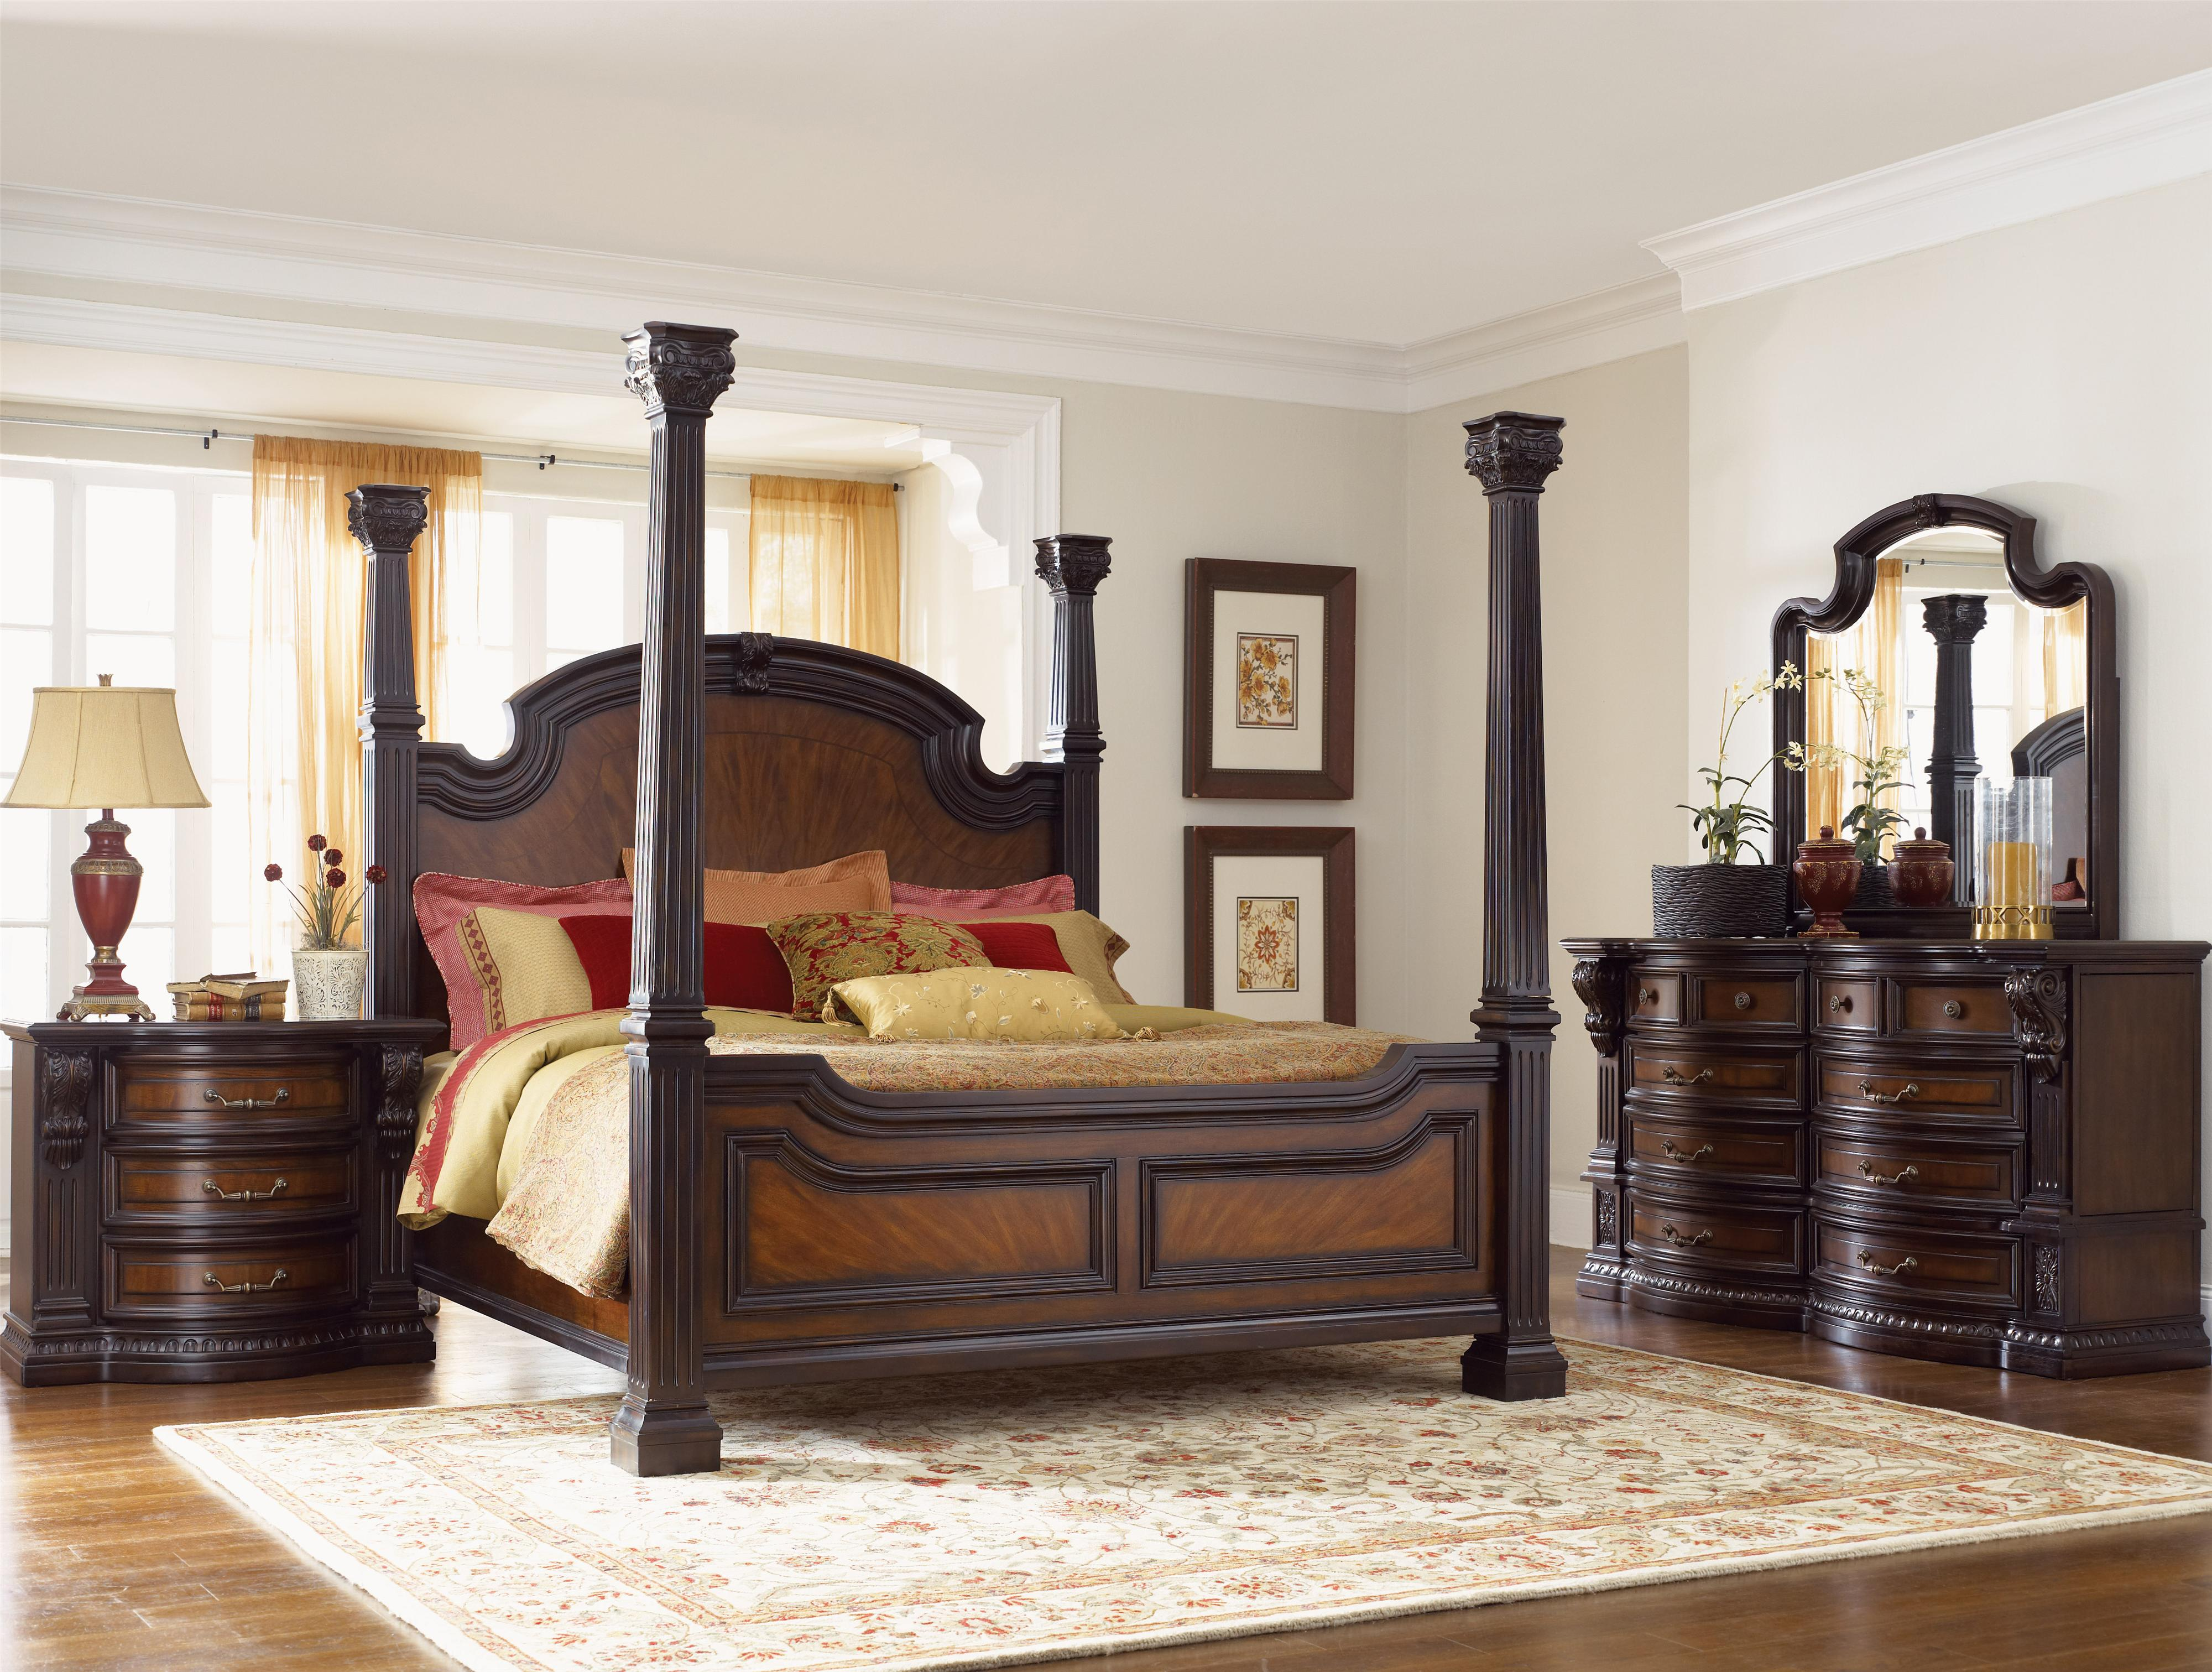 Grand Estates (02) by Fairmont Designs - Royal Furniture - Fairmont ...